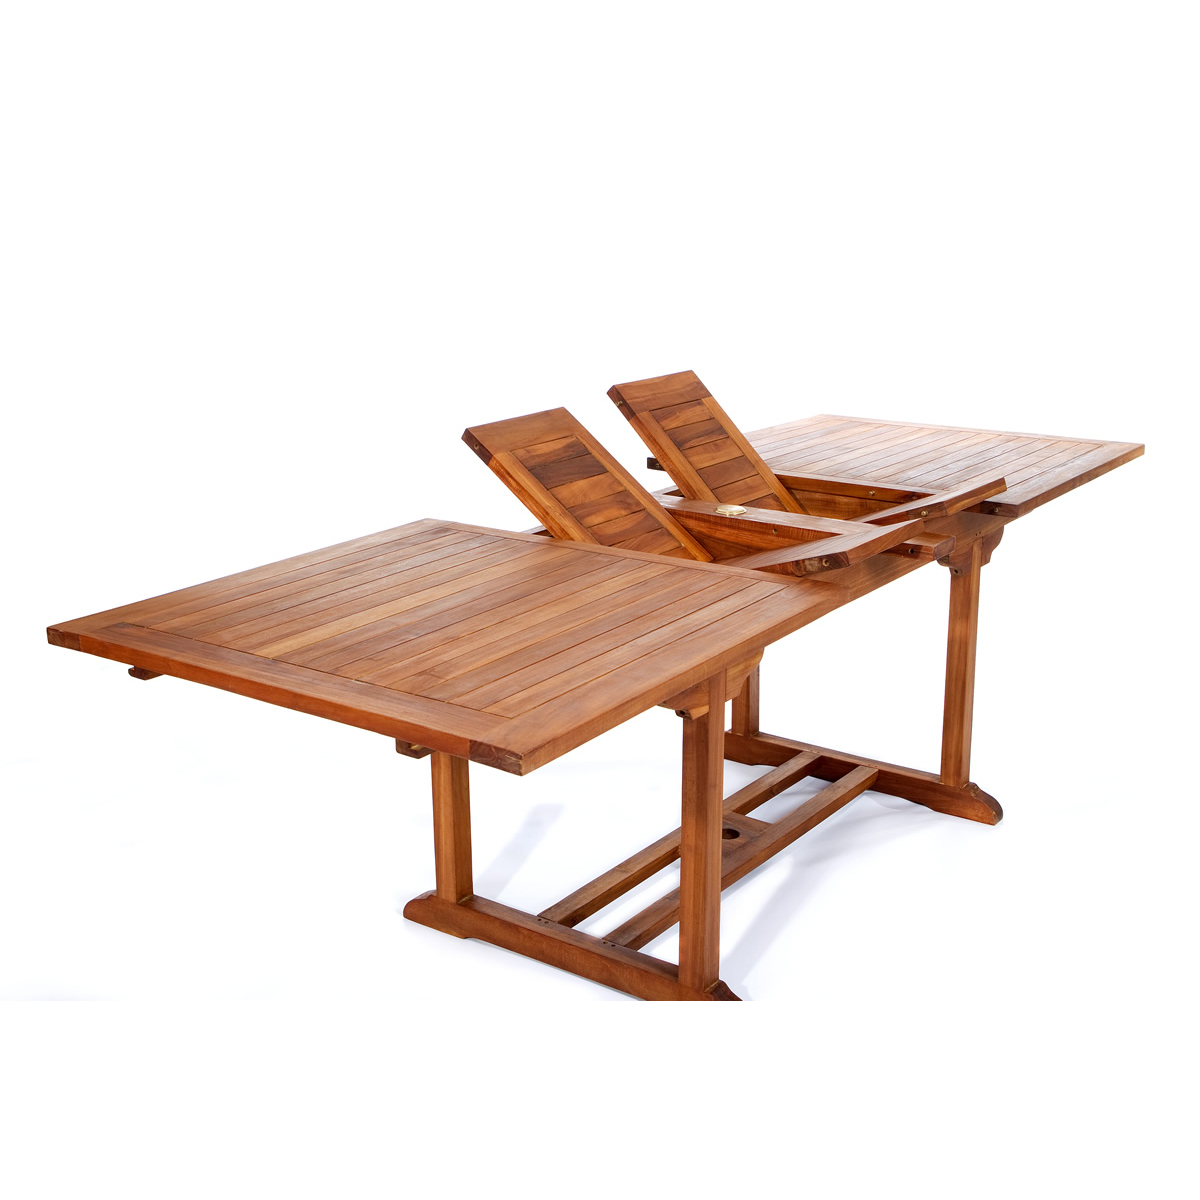 Cool Java Teak 9 Piece Rectangular Extension Table Folding Chair Dining Set Machost Co Dining Chair Design Ideas Machostcouk